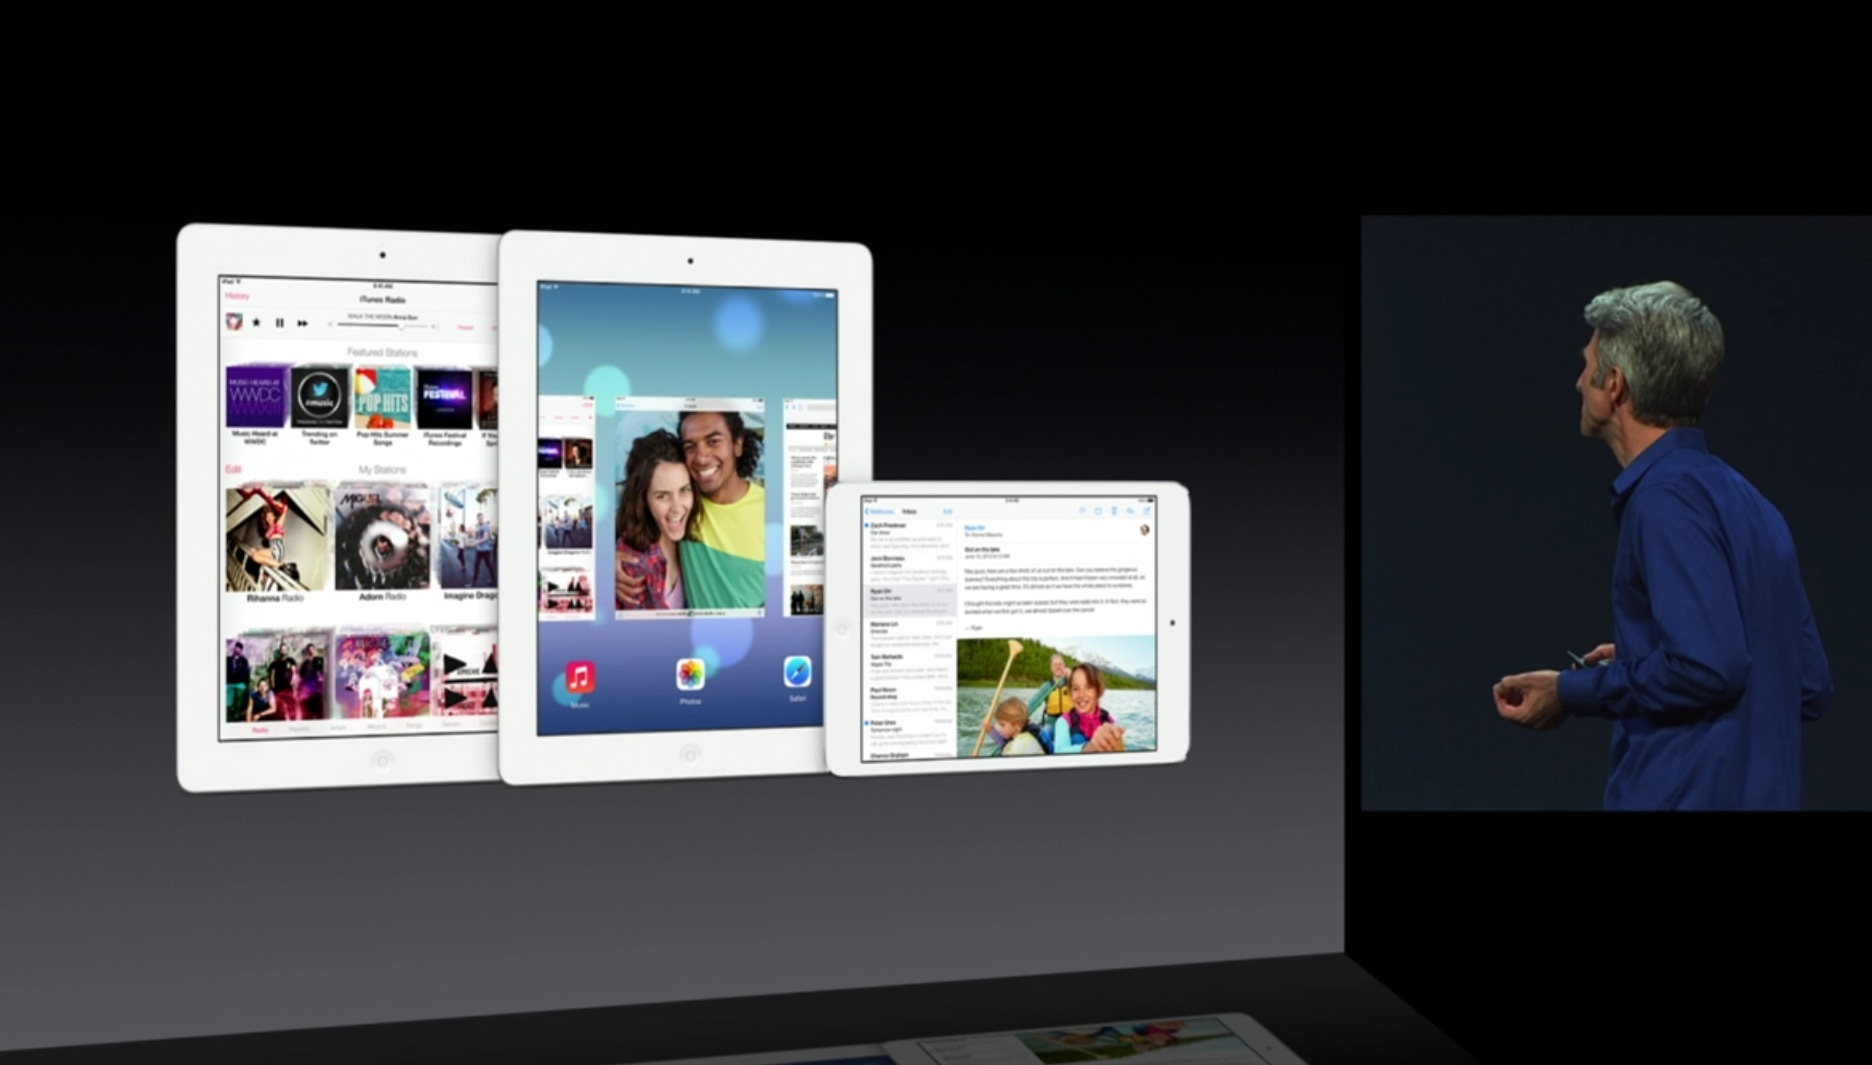 WWDC 2013 session slide (iPad multitasking)